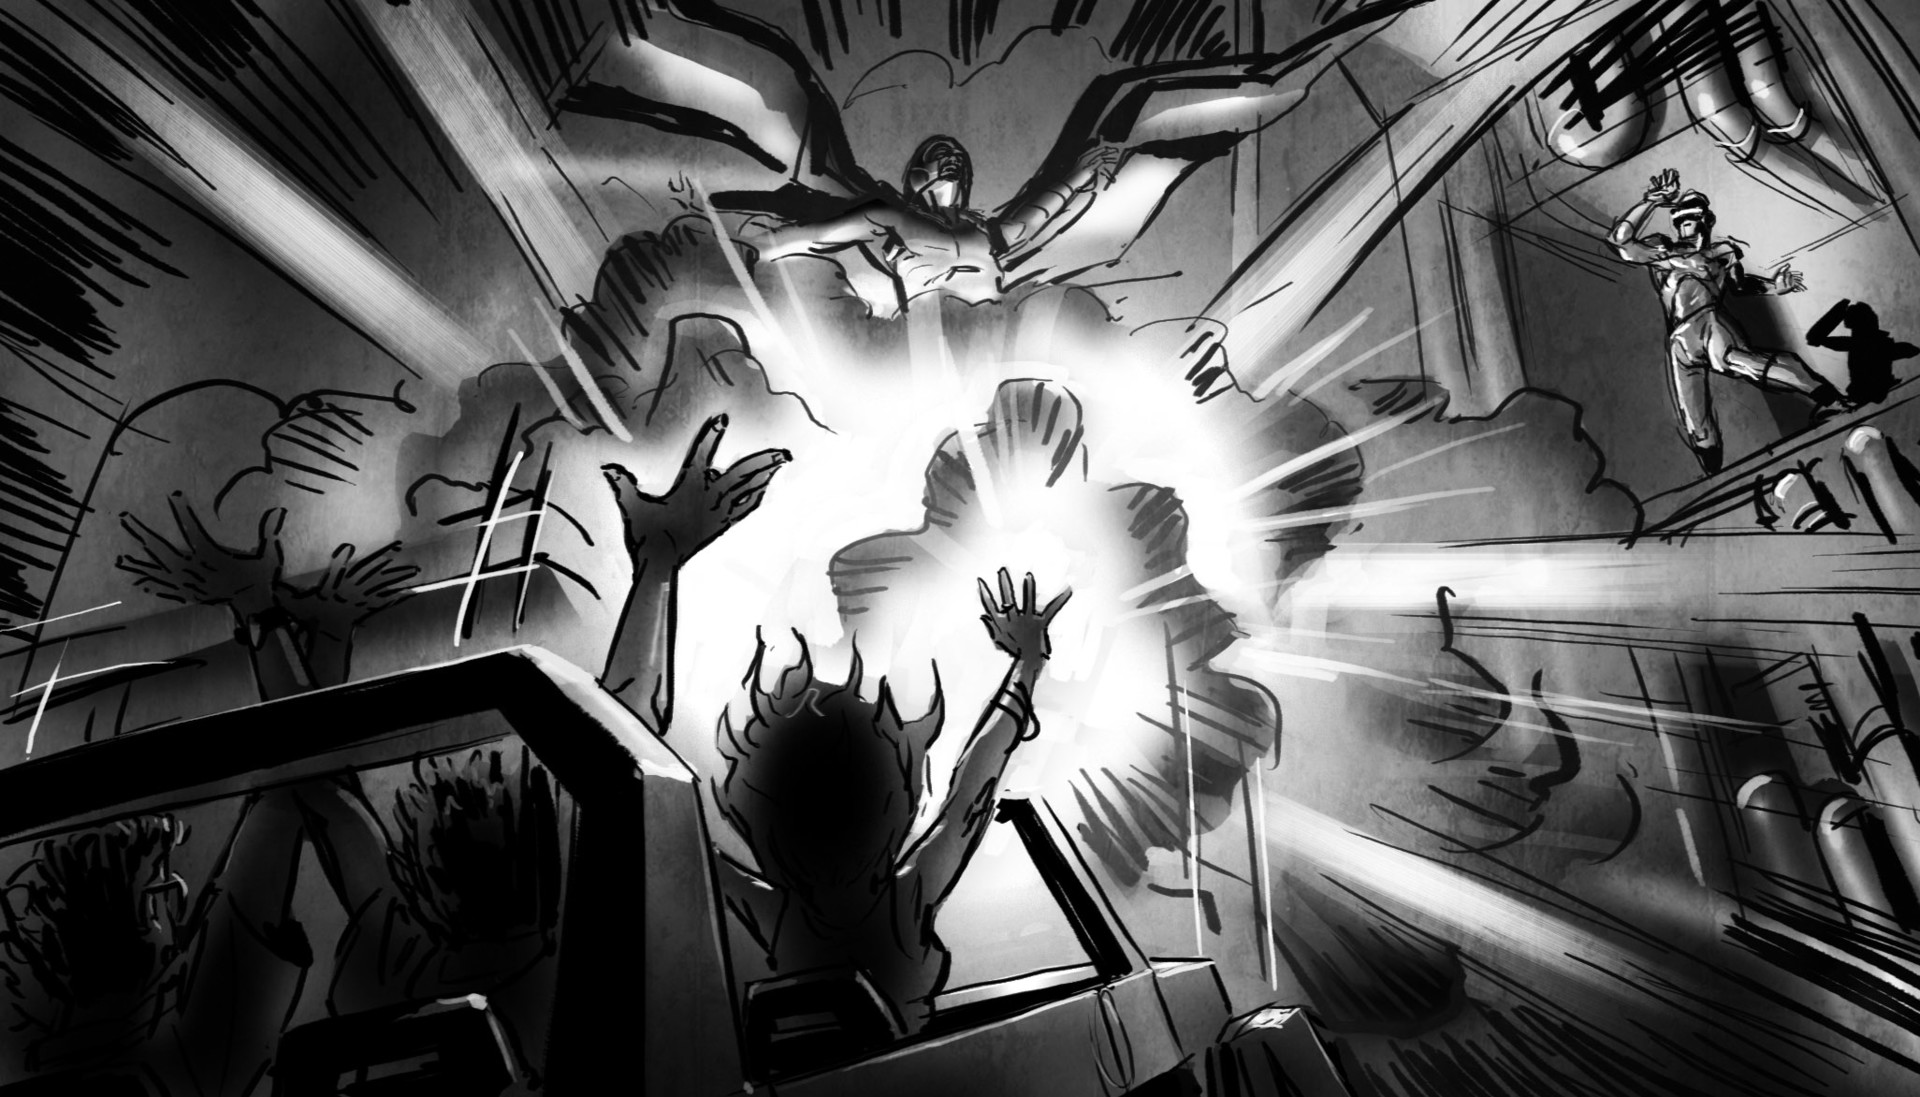 -- culminating in a huge explosion! We drop back to the ground and make our escape in reverse--